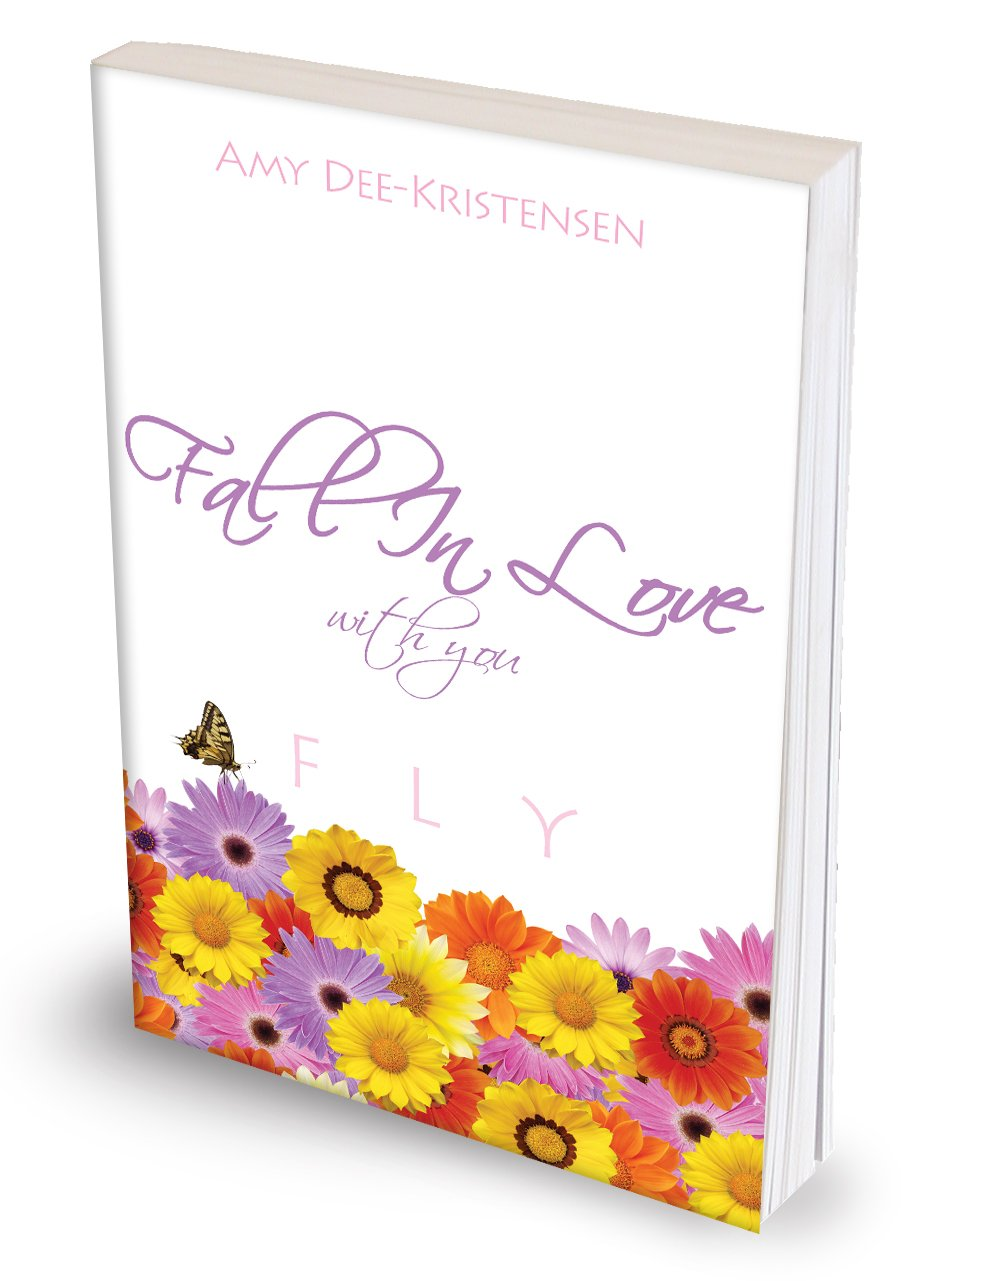 Fall in Love with You by Amy Dee Kristensen